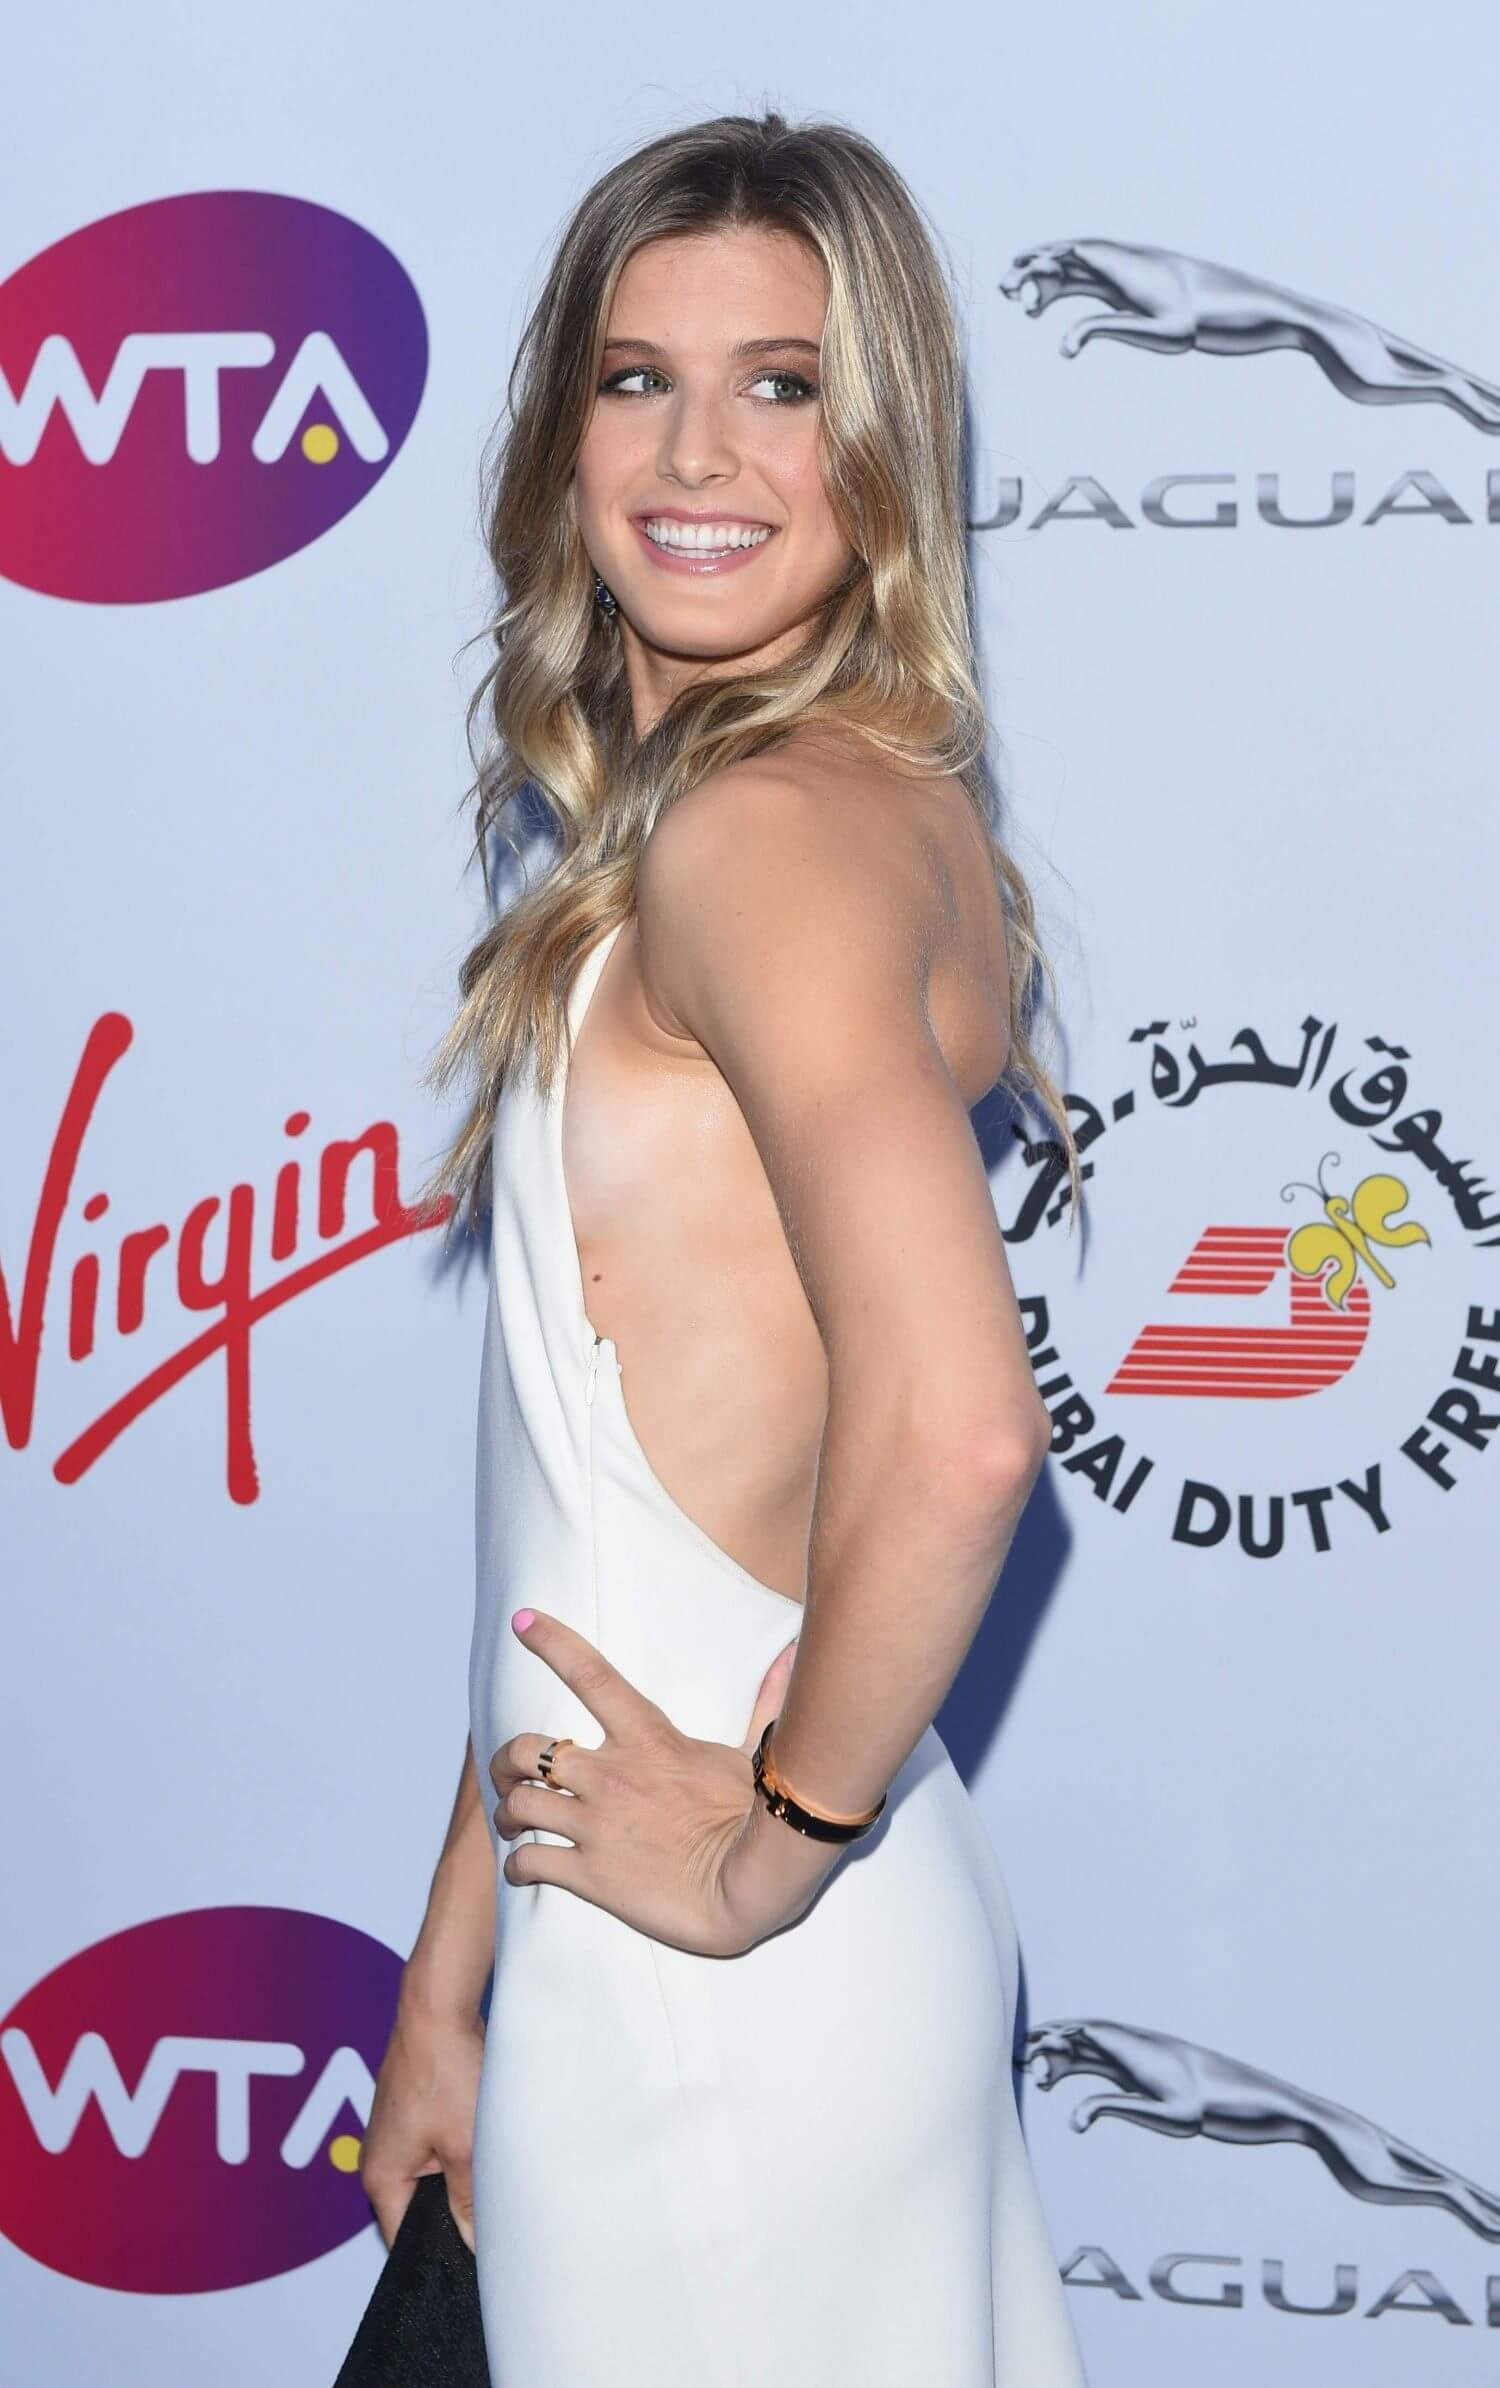 Eugenie Bouchard hot side pic